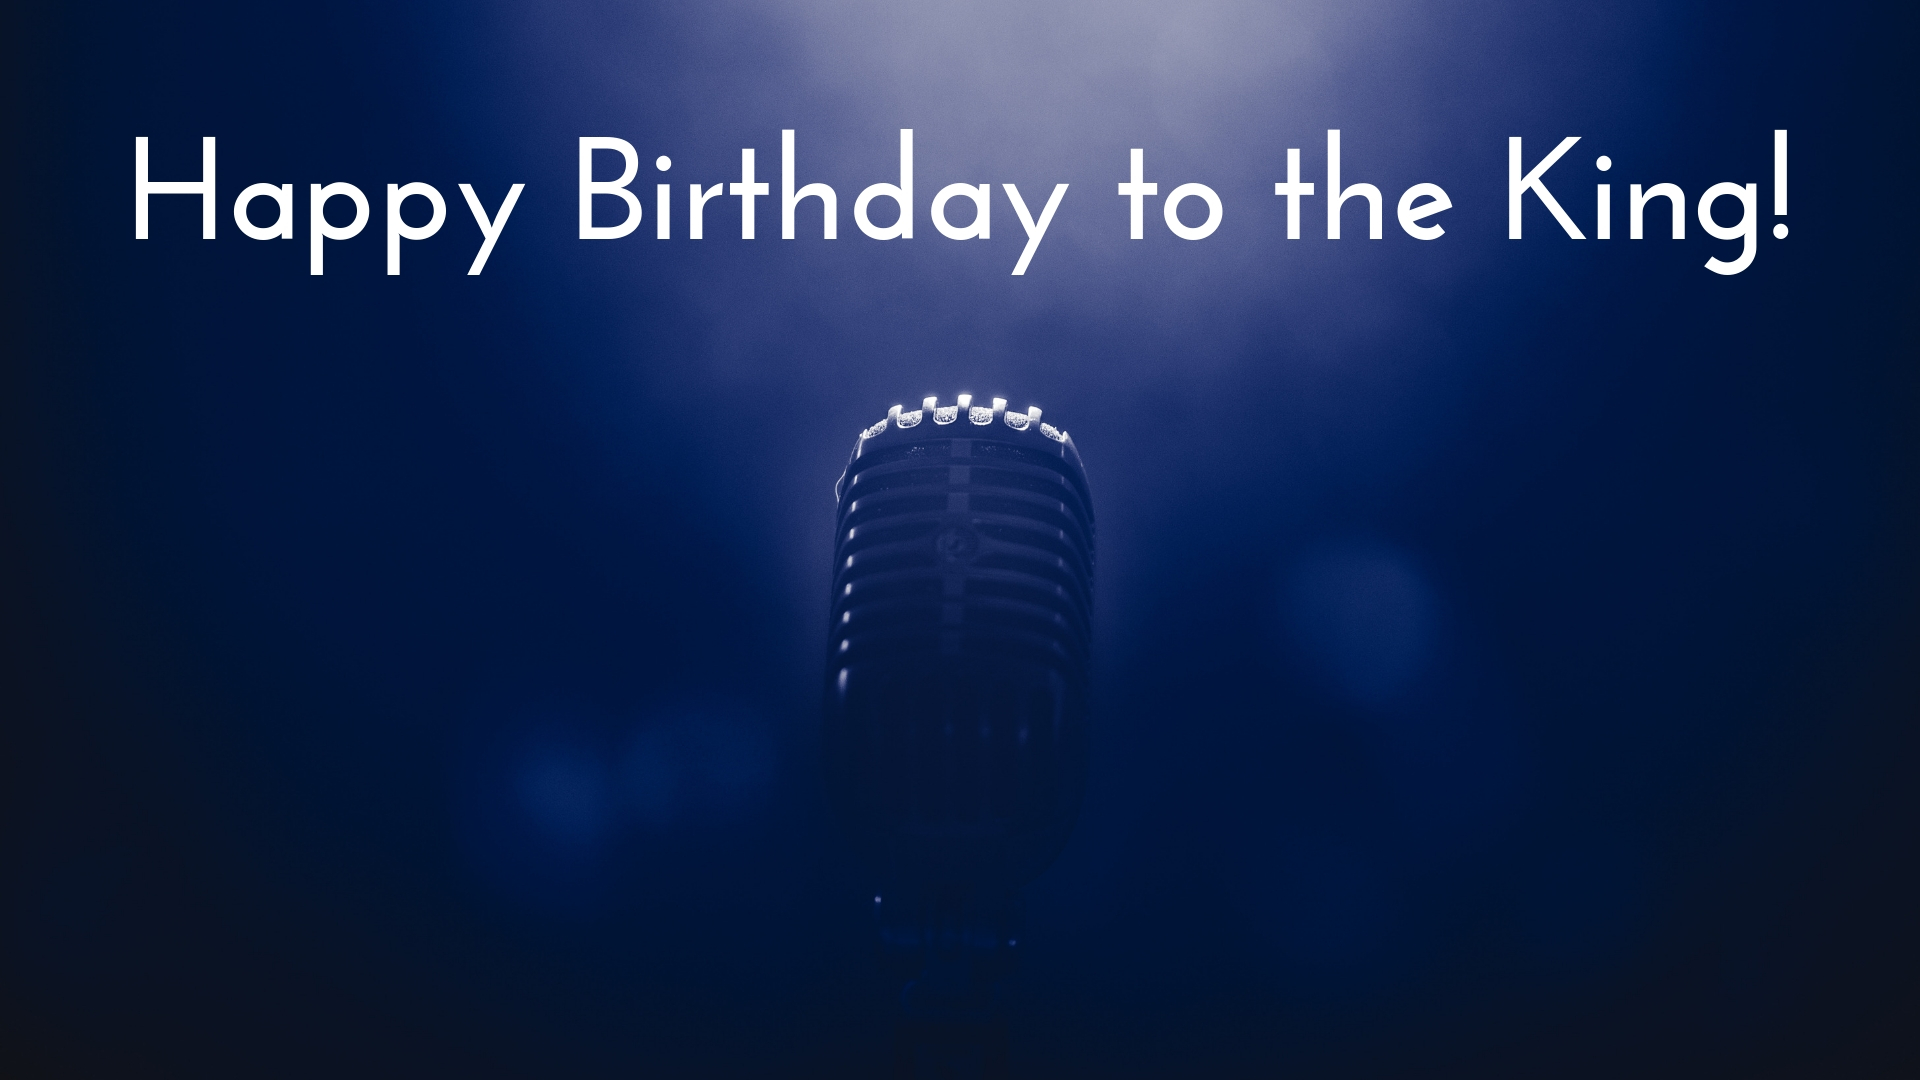 banner-happy-birthday-to-the-king-01 (1).jpg